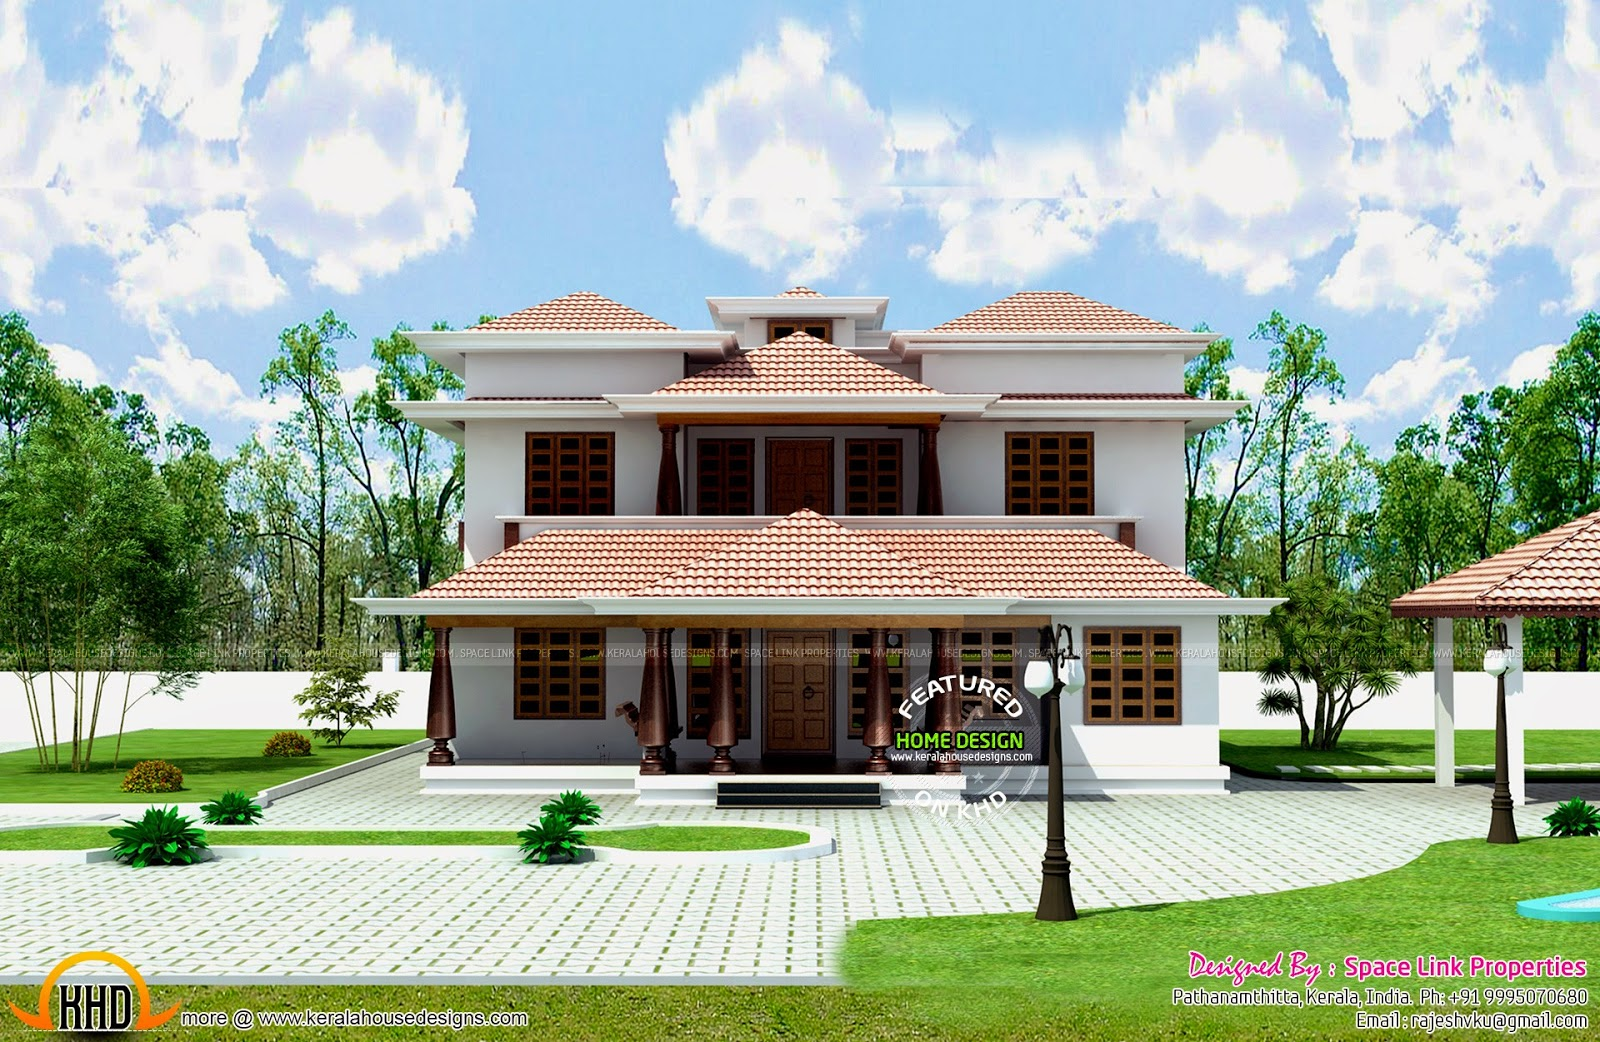 Typical kerala traditional house kerala home design and for Traditional house plans in kerala